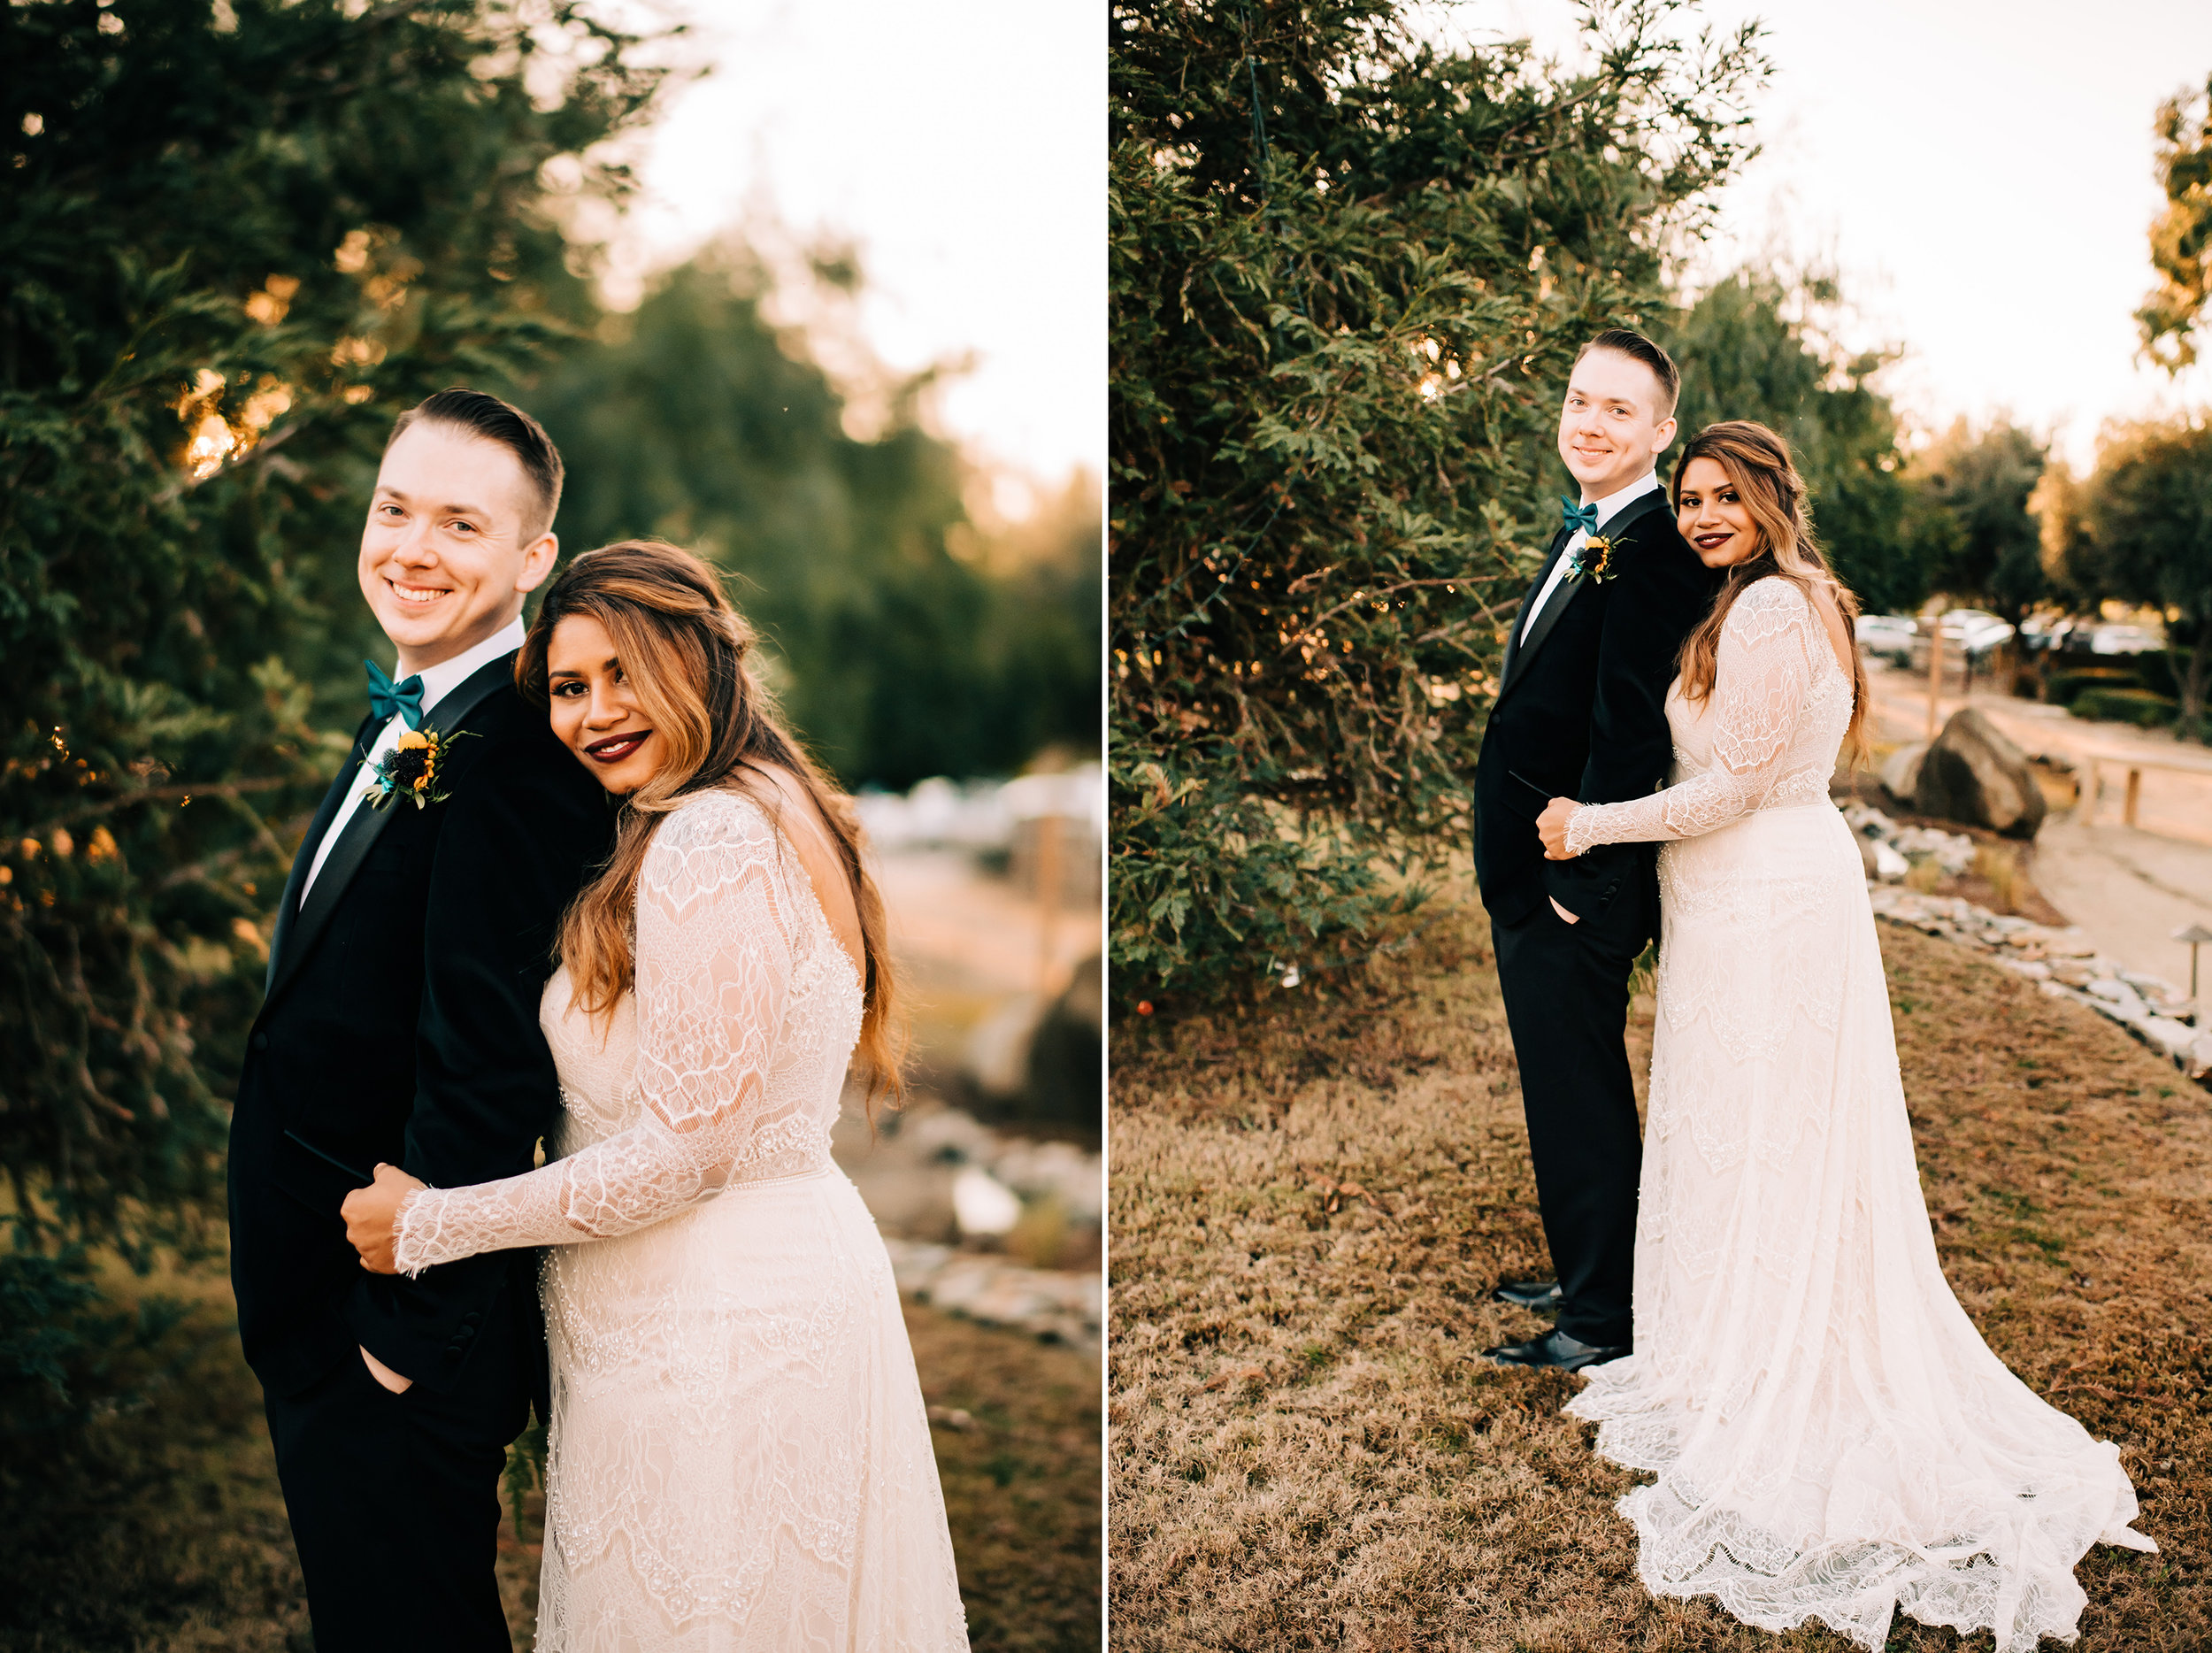 bay area nontraditional wedding photographer southern california boho wedding love light magic san francisco oakland northern california-887.jpg